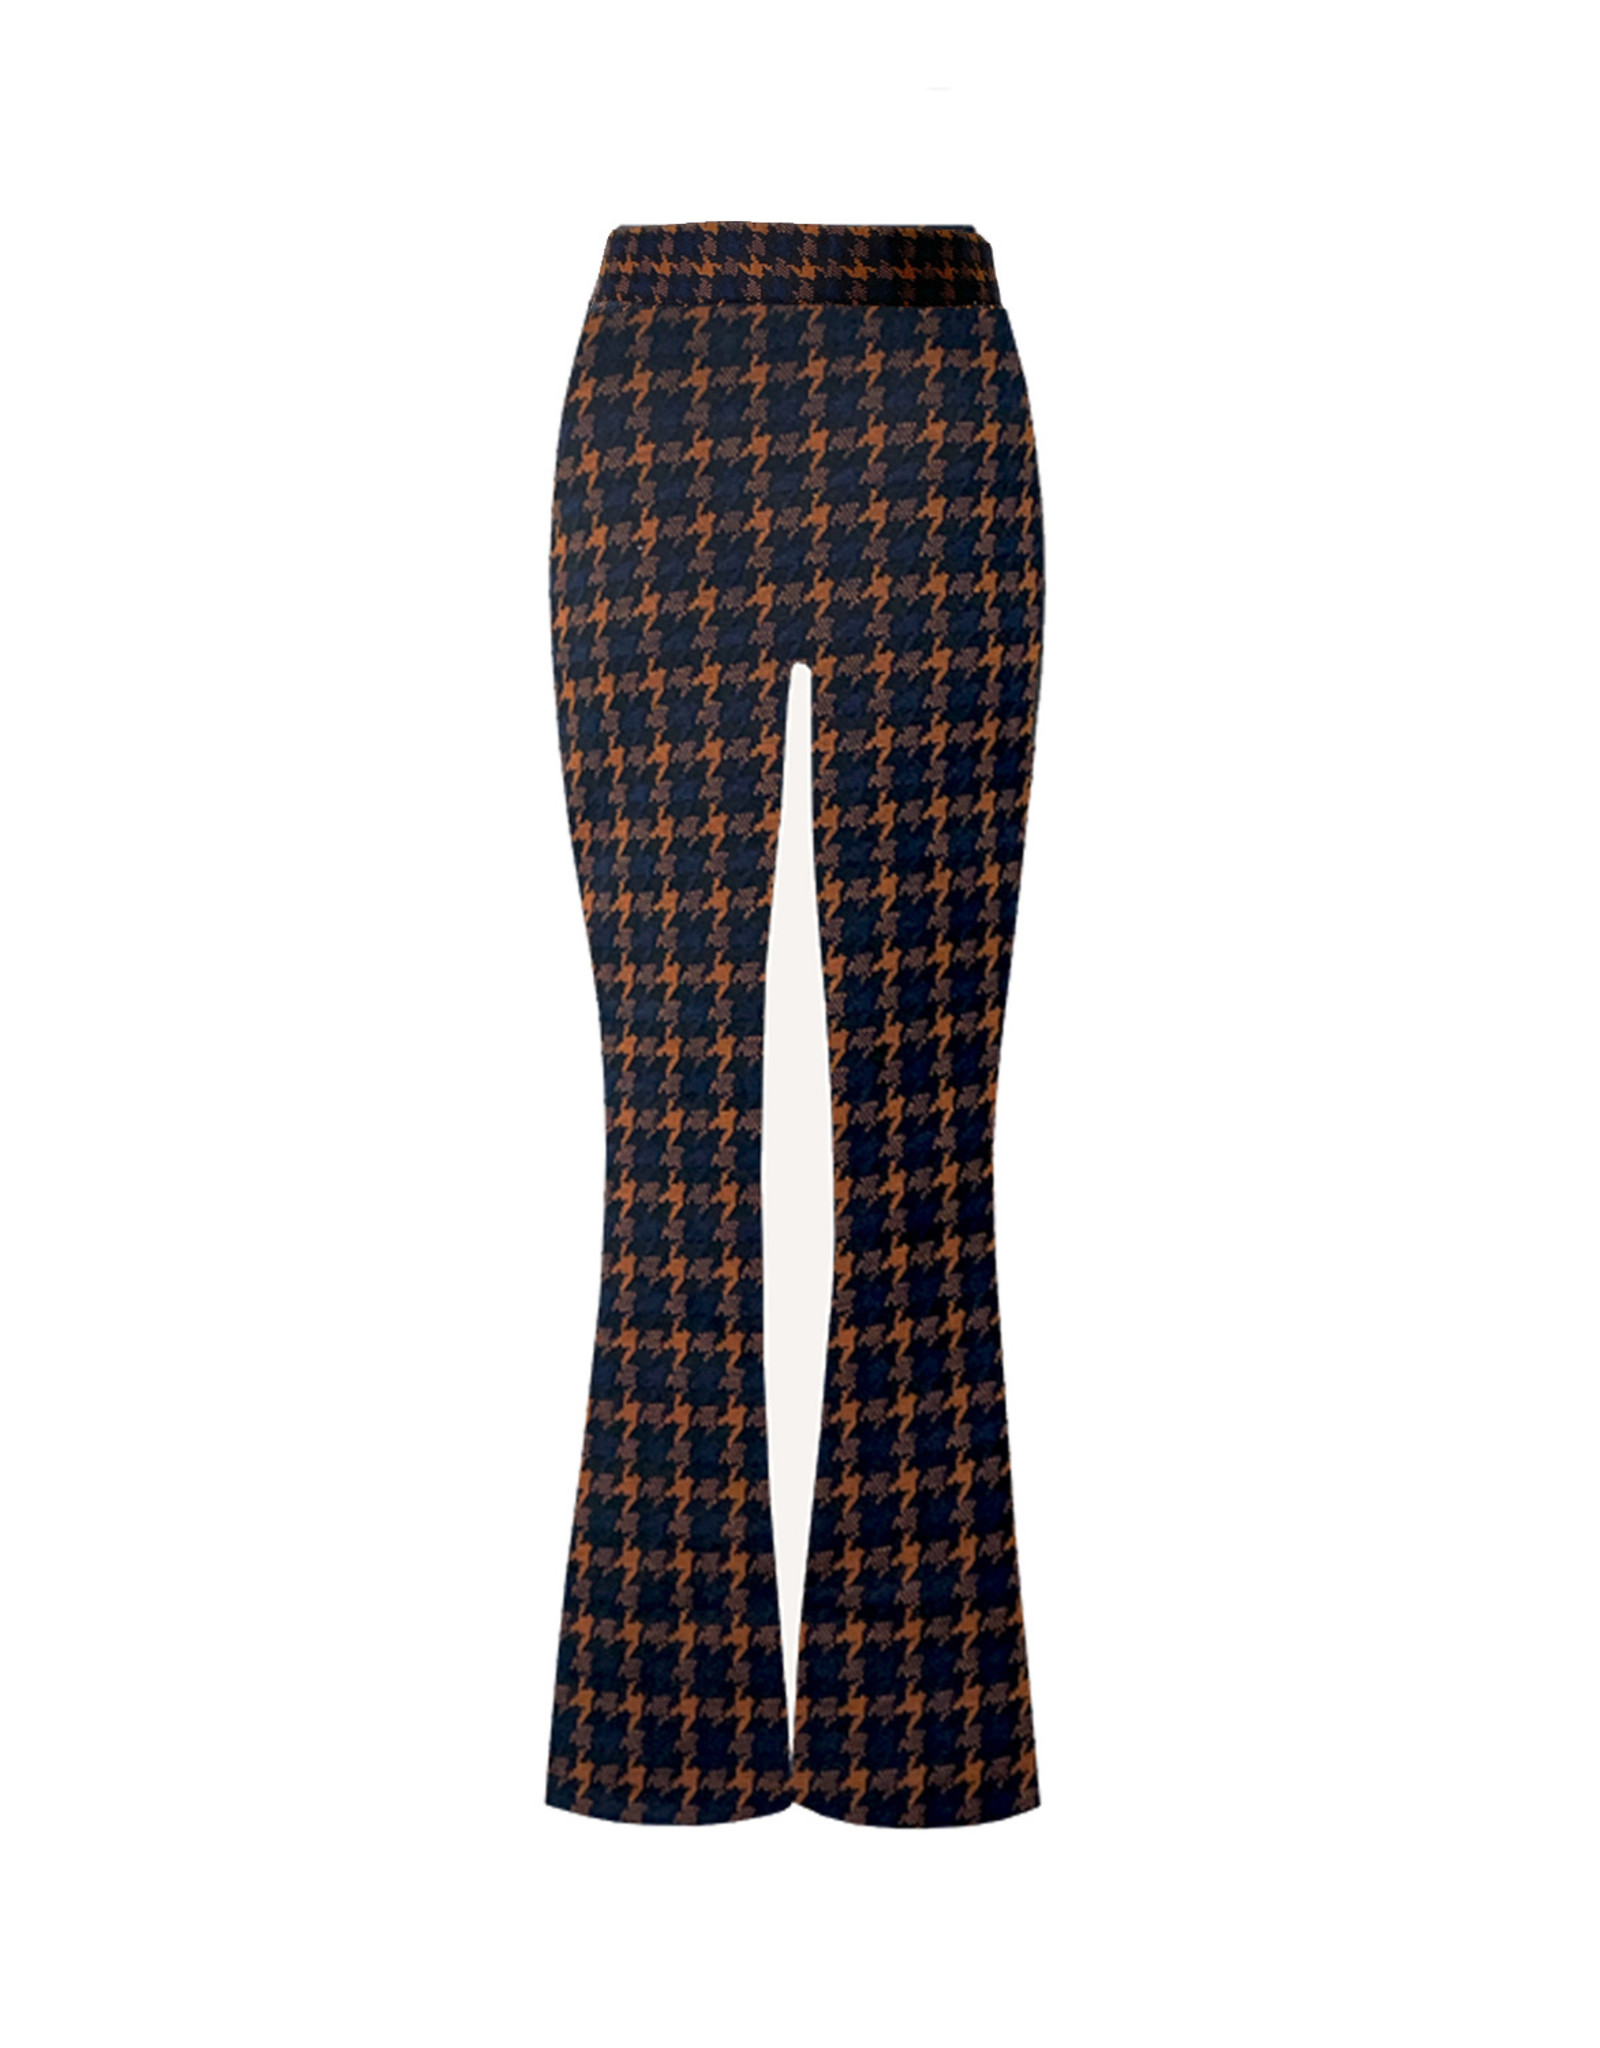 Topitm TOPitm flared pants Donna Rusty red/black